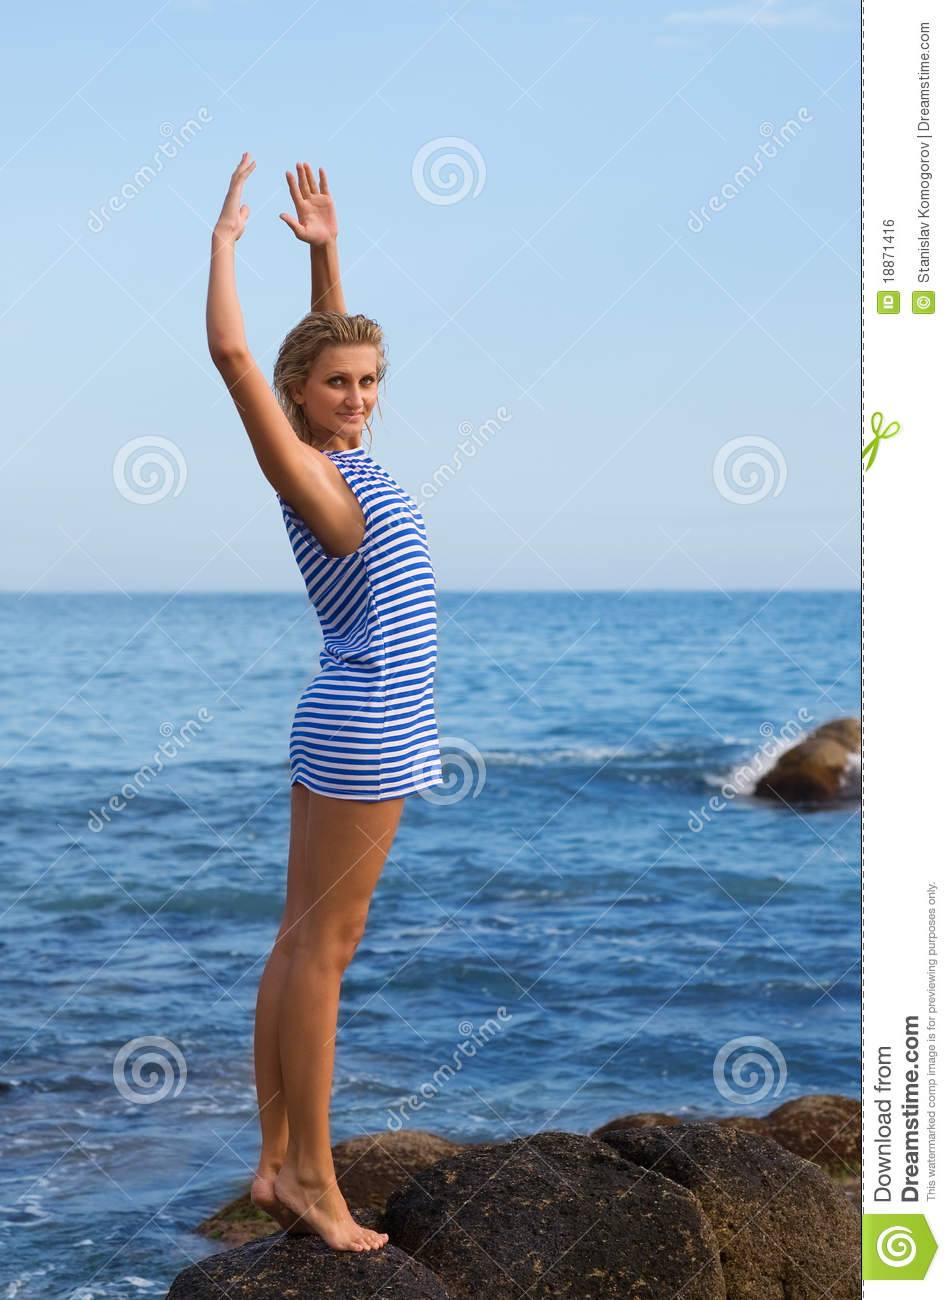 Attractive young girl on a rocky seashore.